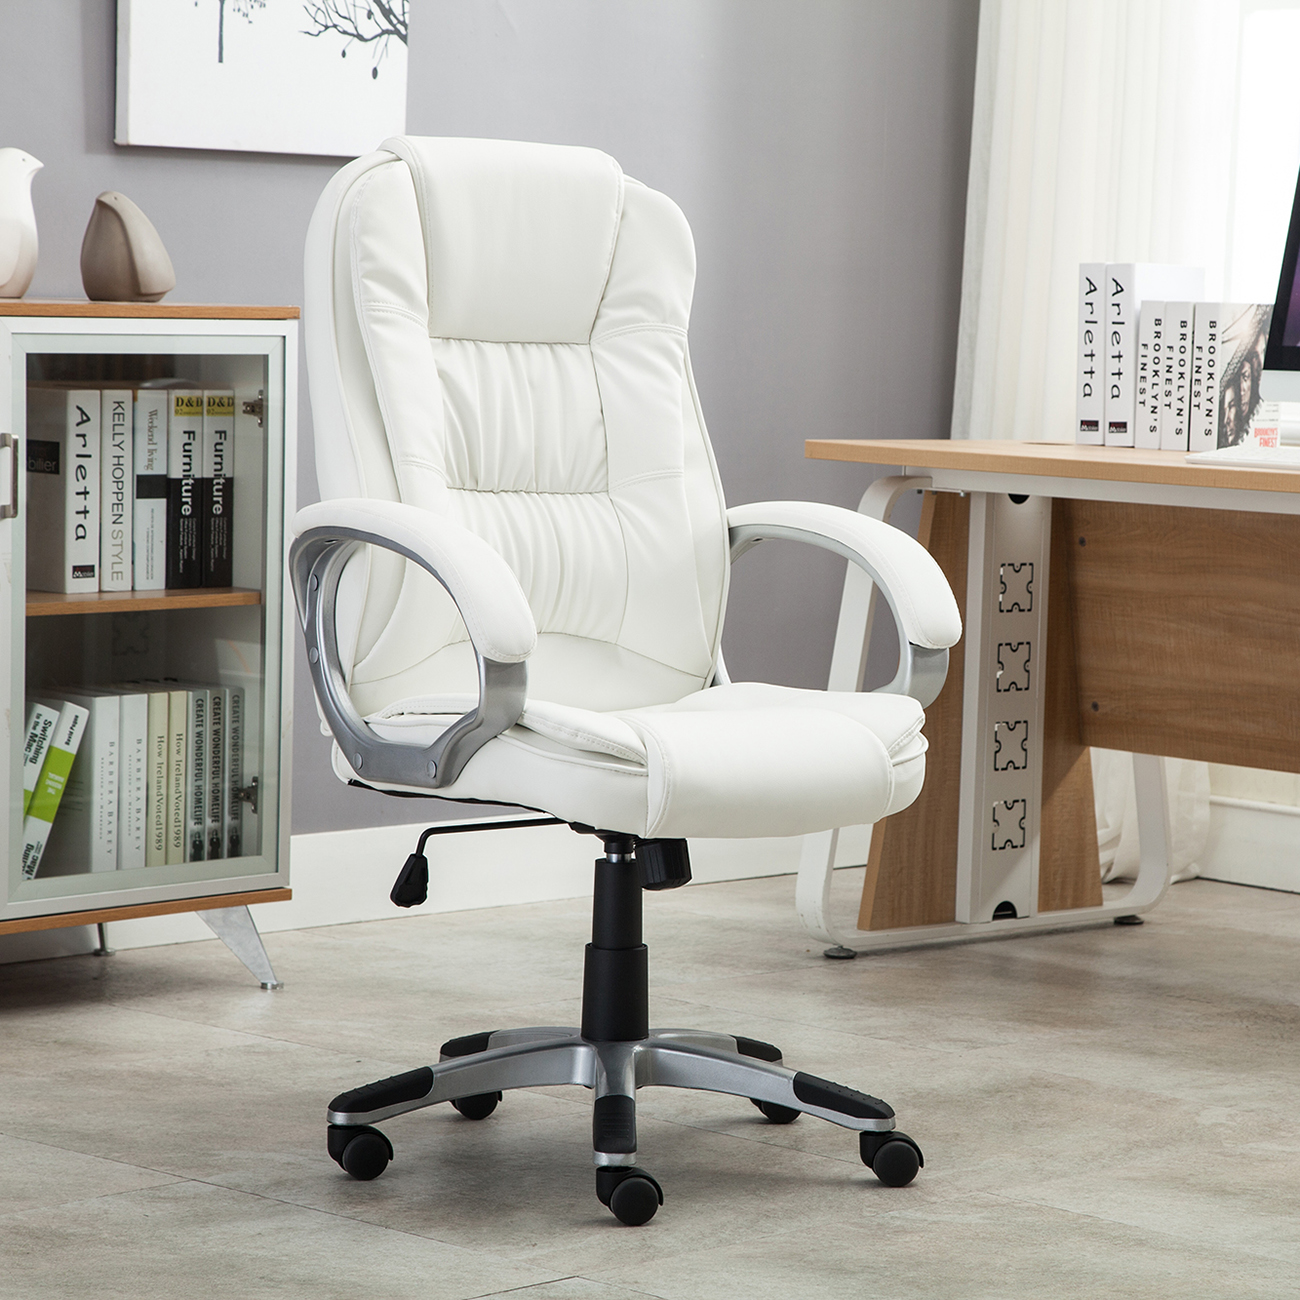 Comfortable Office Chairs White Pu Leather High Back Office Chair Executive